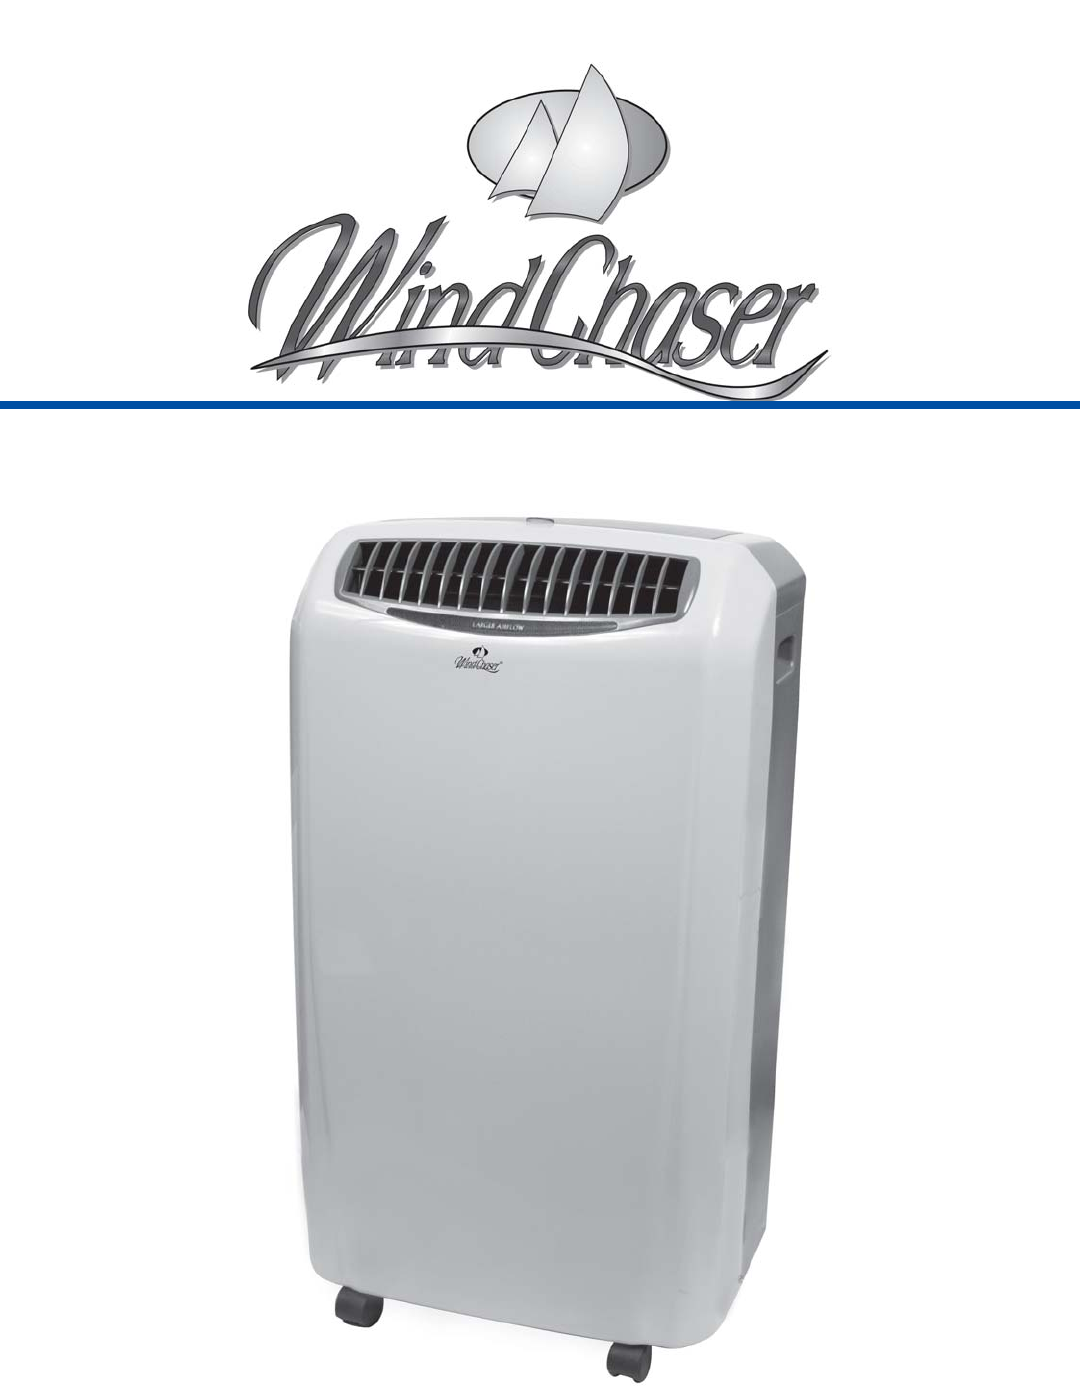 WindChaser Products Air Conditioner PACR9 User Guide ManualsOnline  #104890